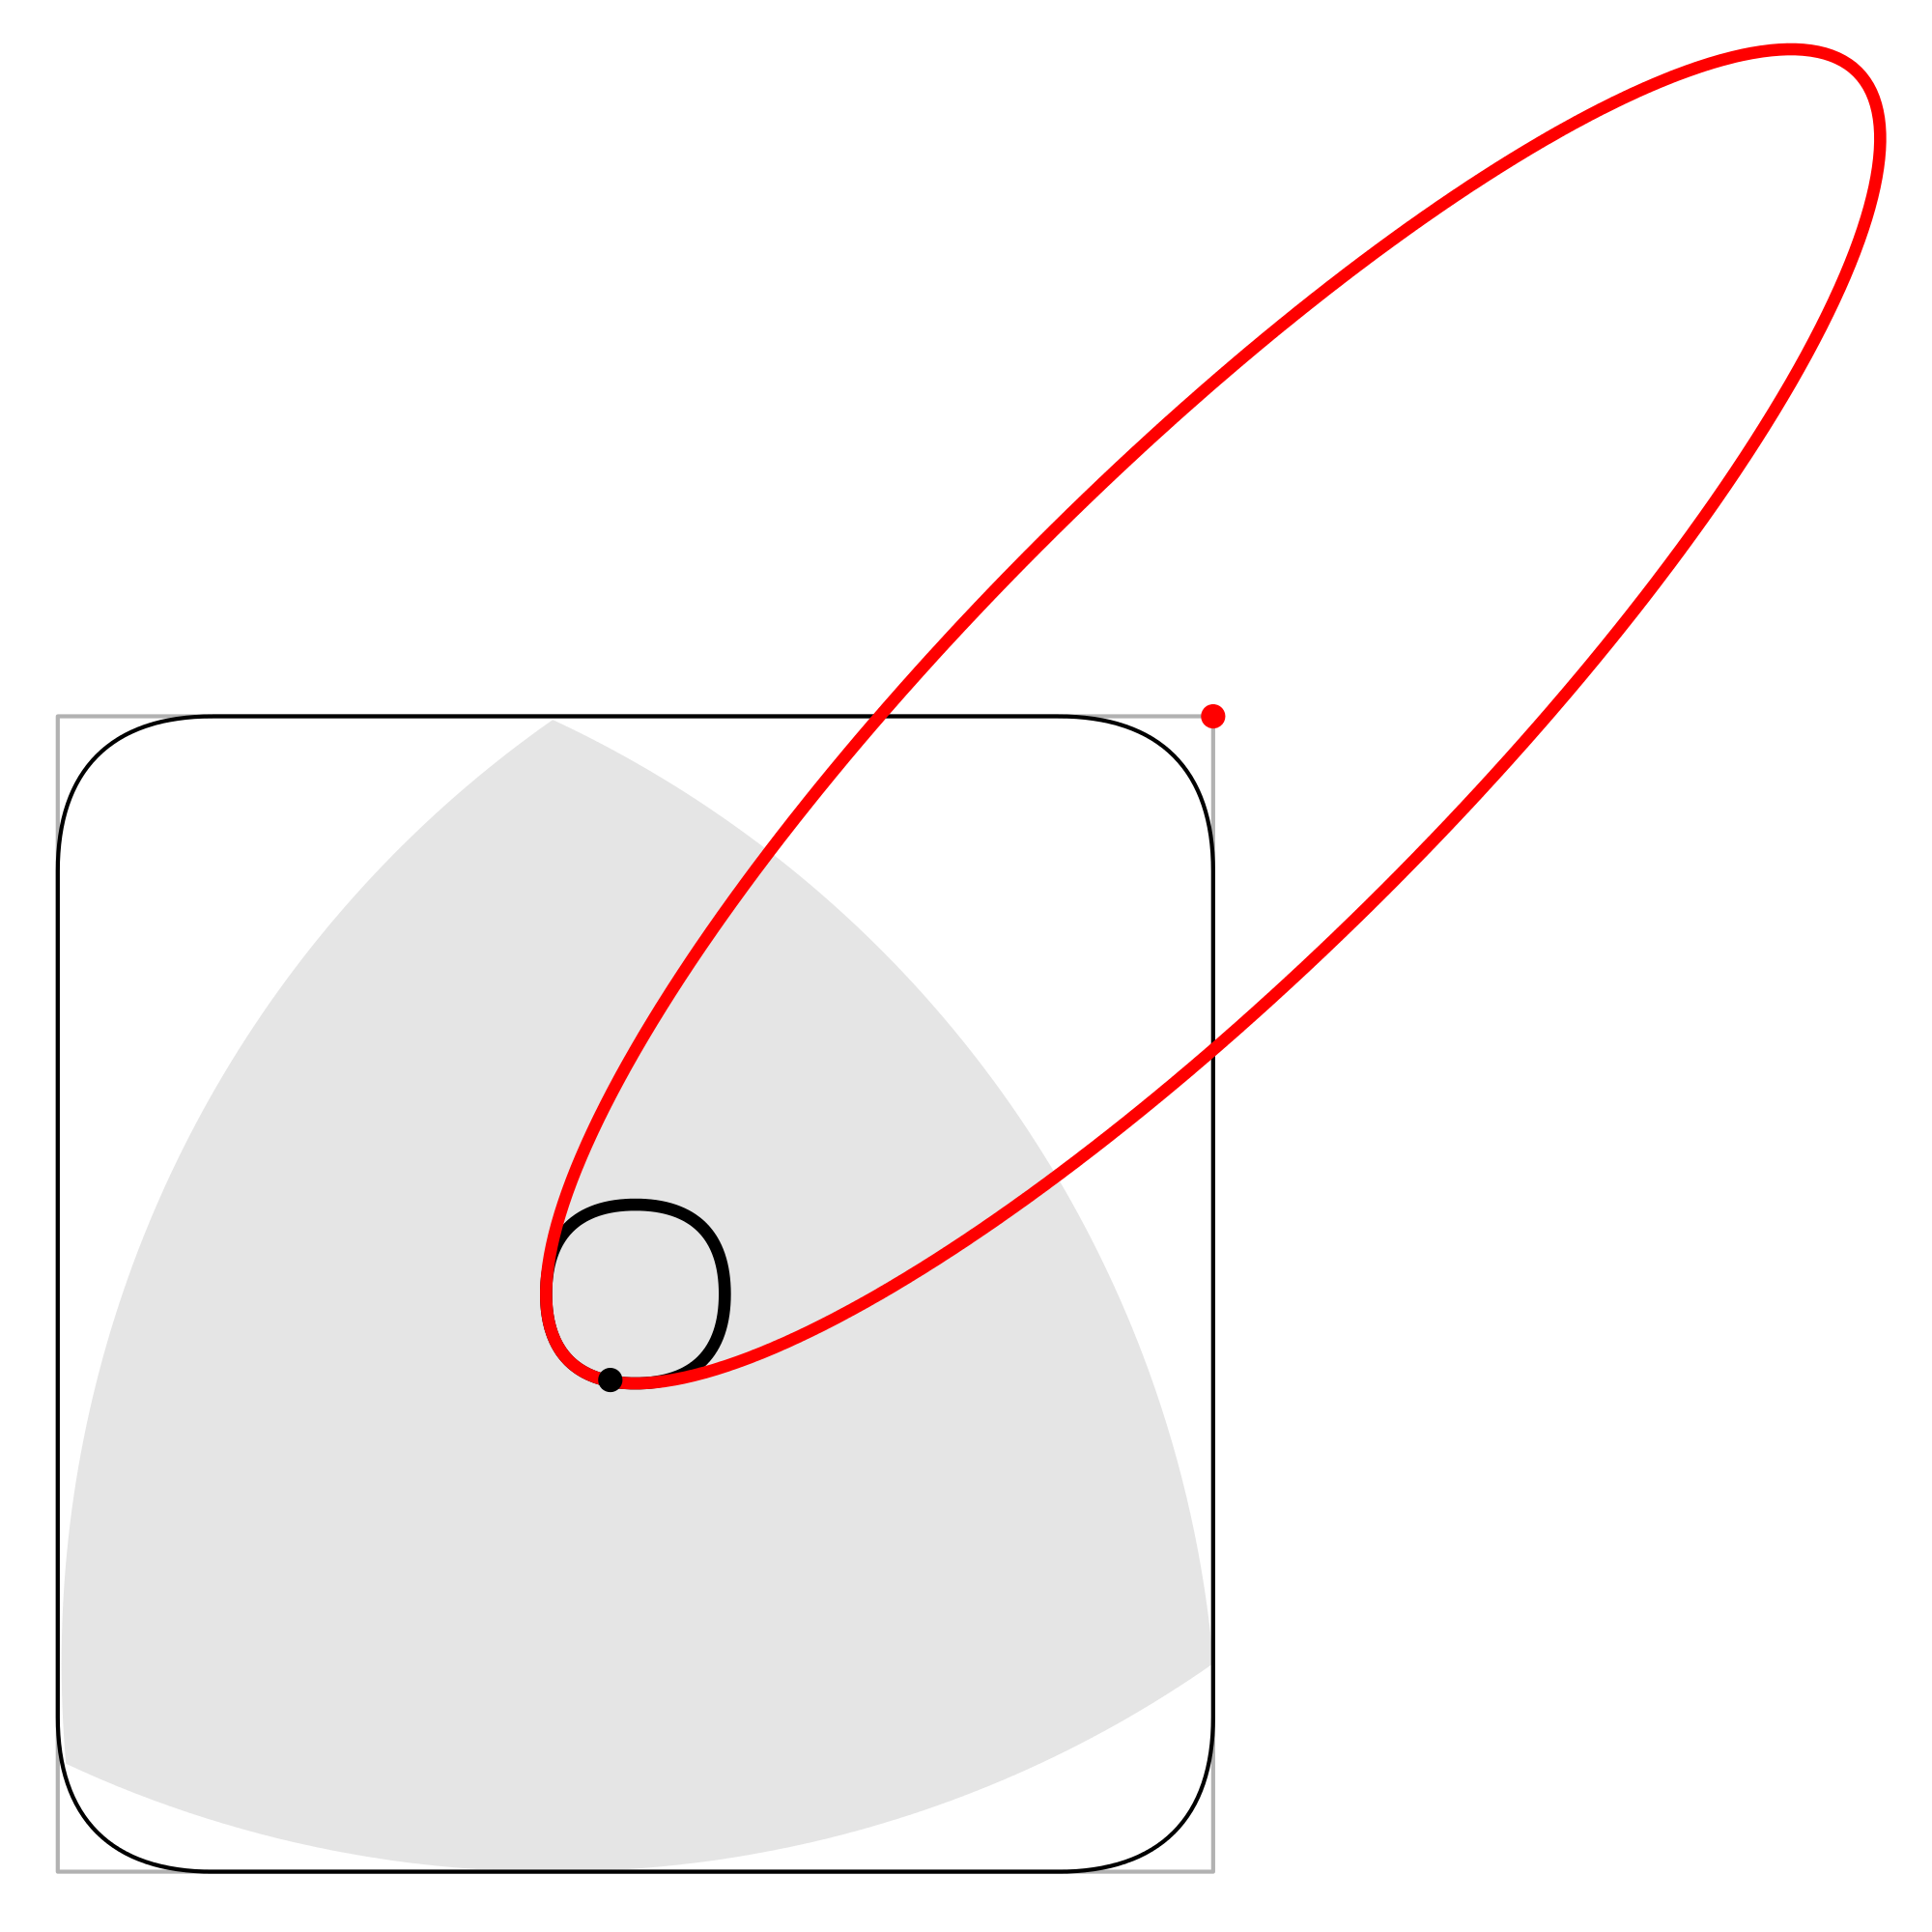 Center svg. File reuleaux triangle rotation